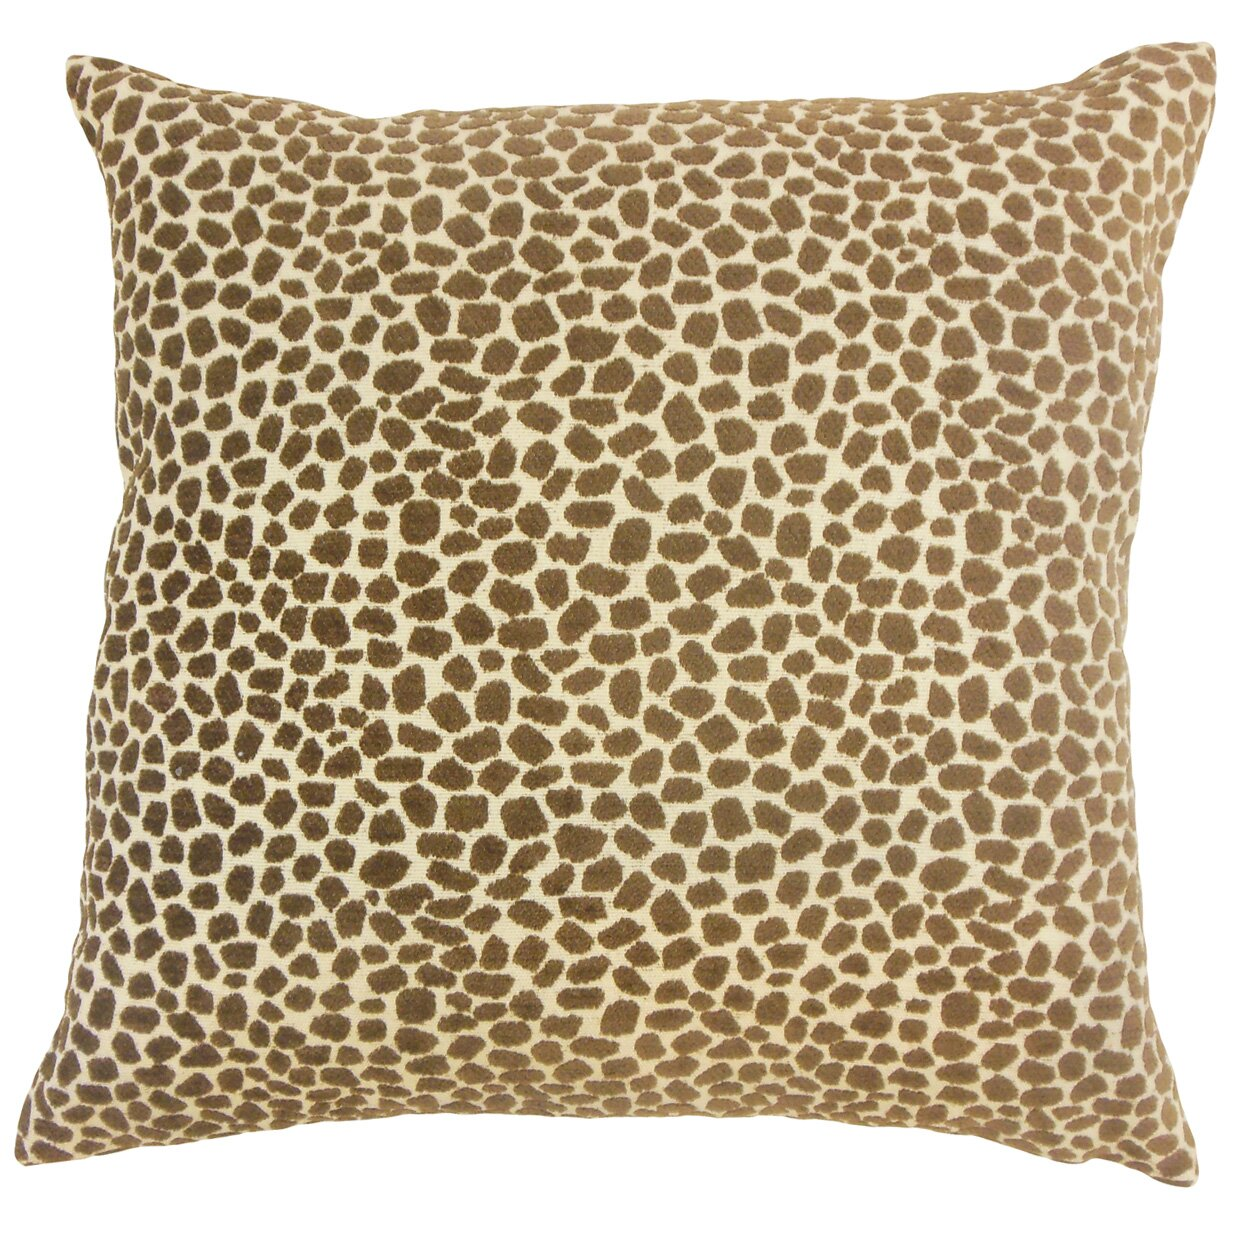 Animal Print Sofa Pillows : Meltem Animal Print Throw Pillow Wayfair